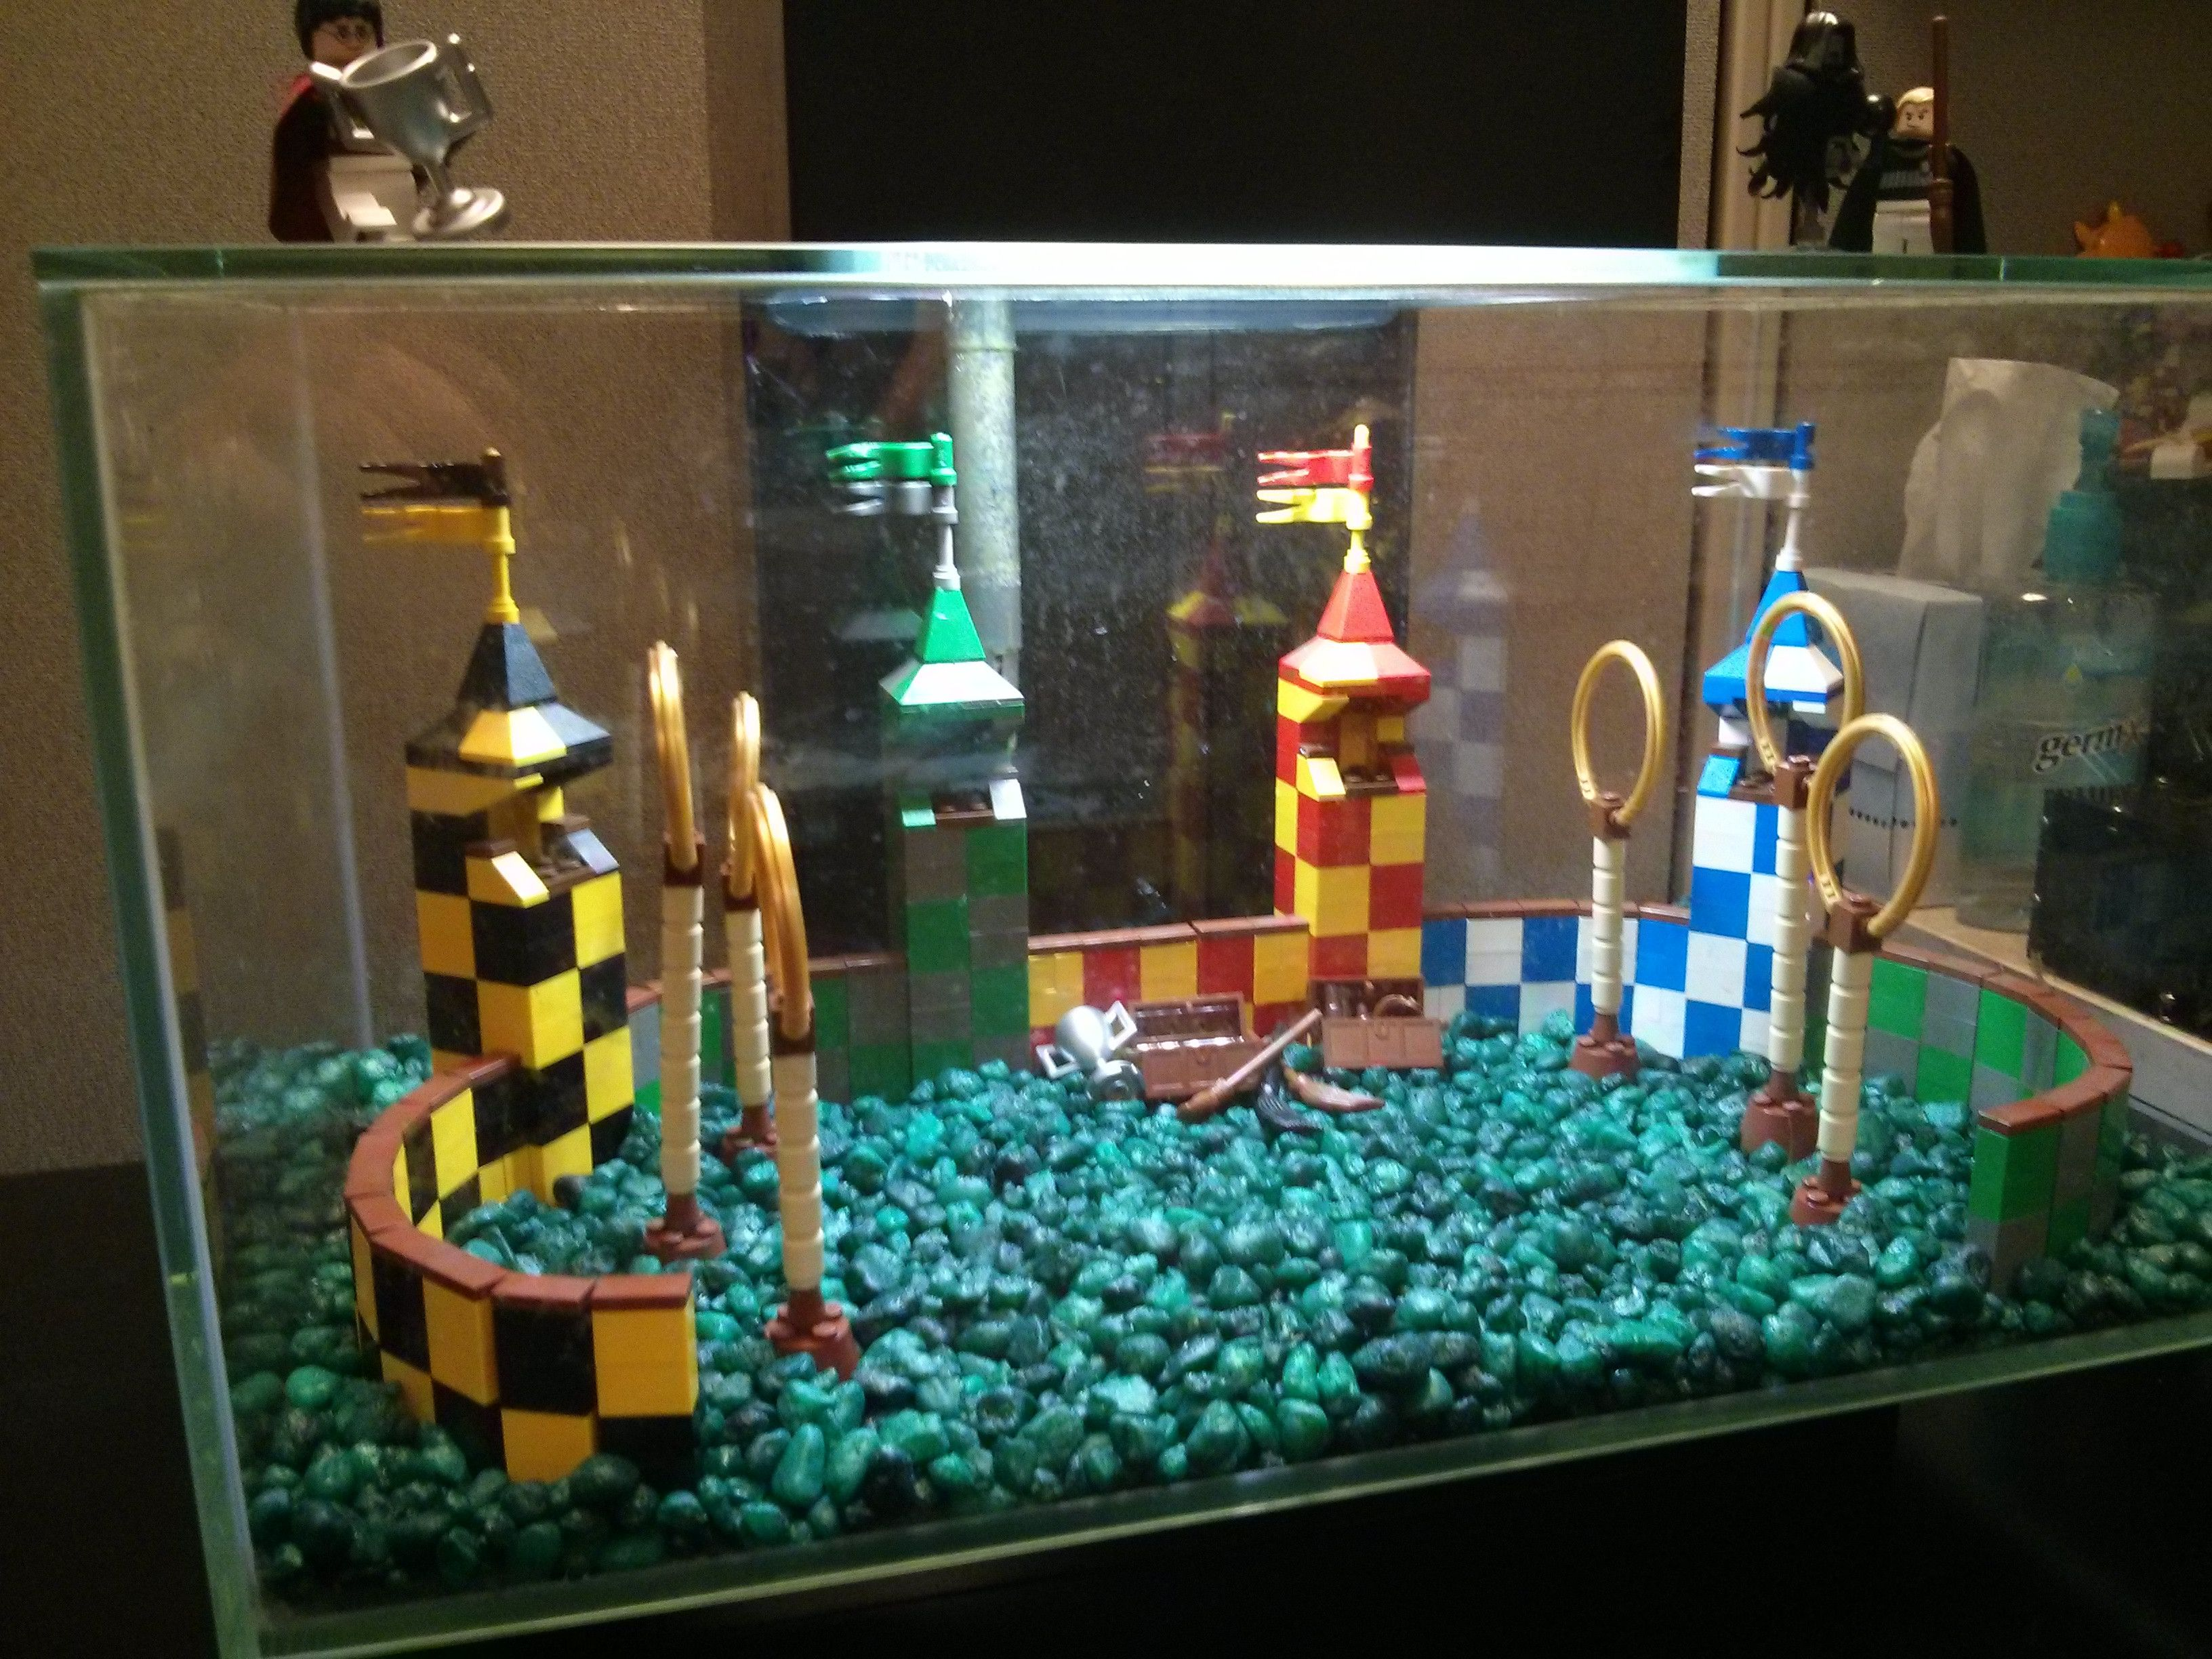 Fish tank decorations zombie - Quidditch Aquarium Decoration Build Imgur